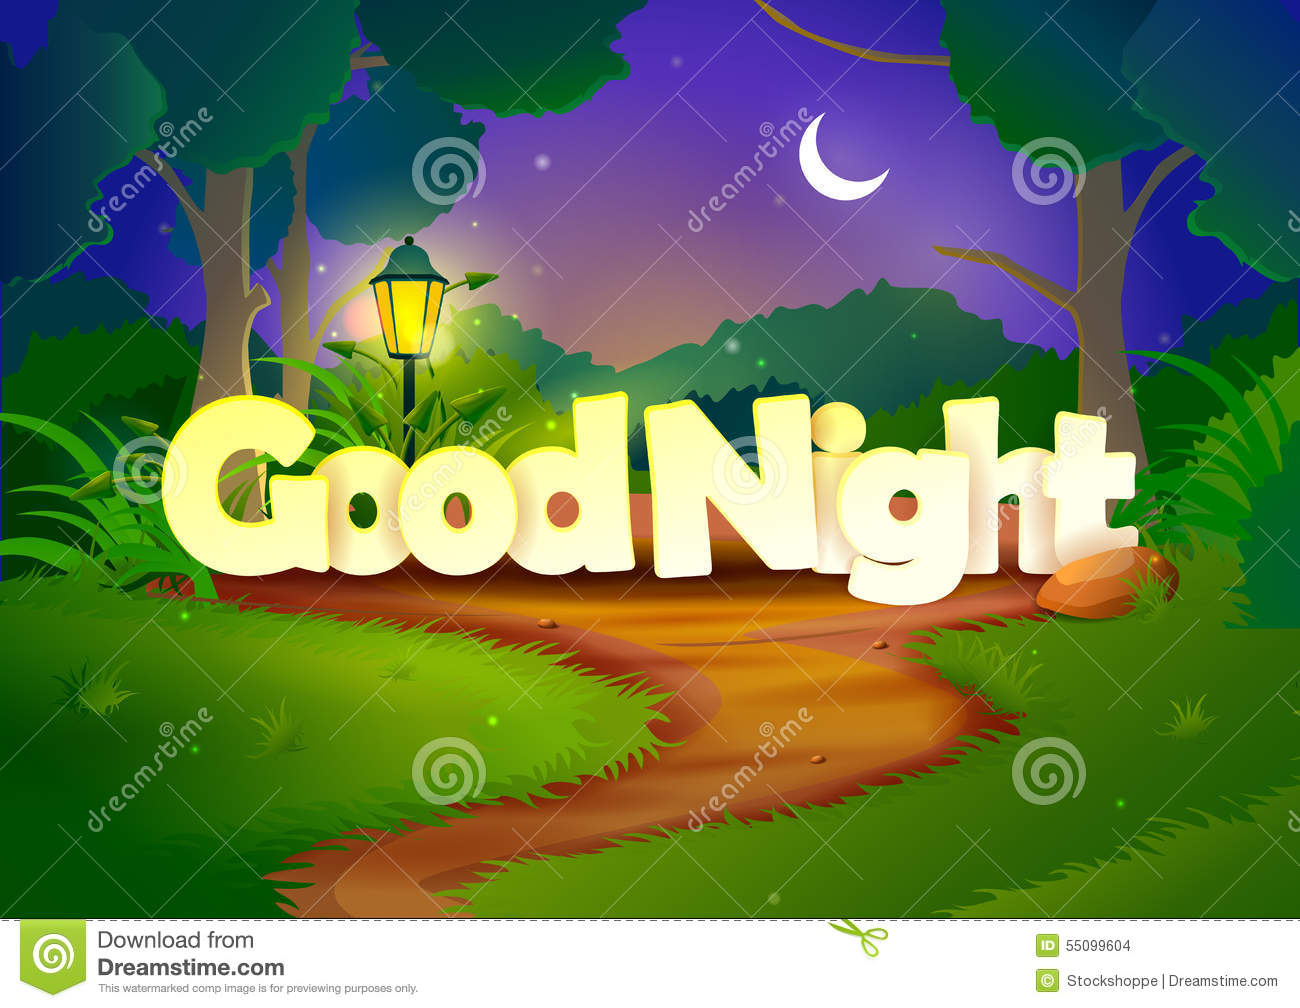 Good Night Wallpaper Background Stock Vector Illustration Of Relax